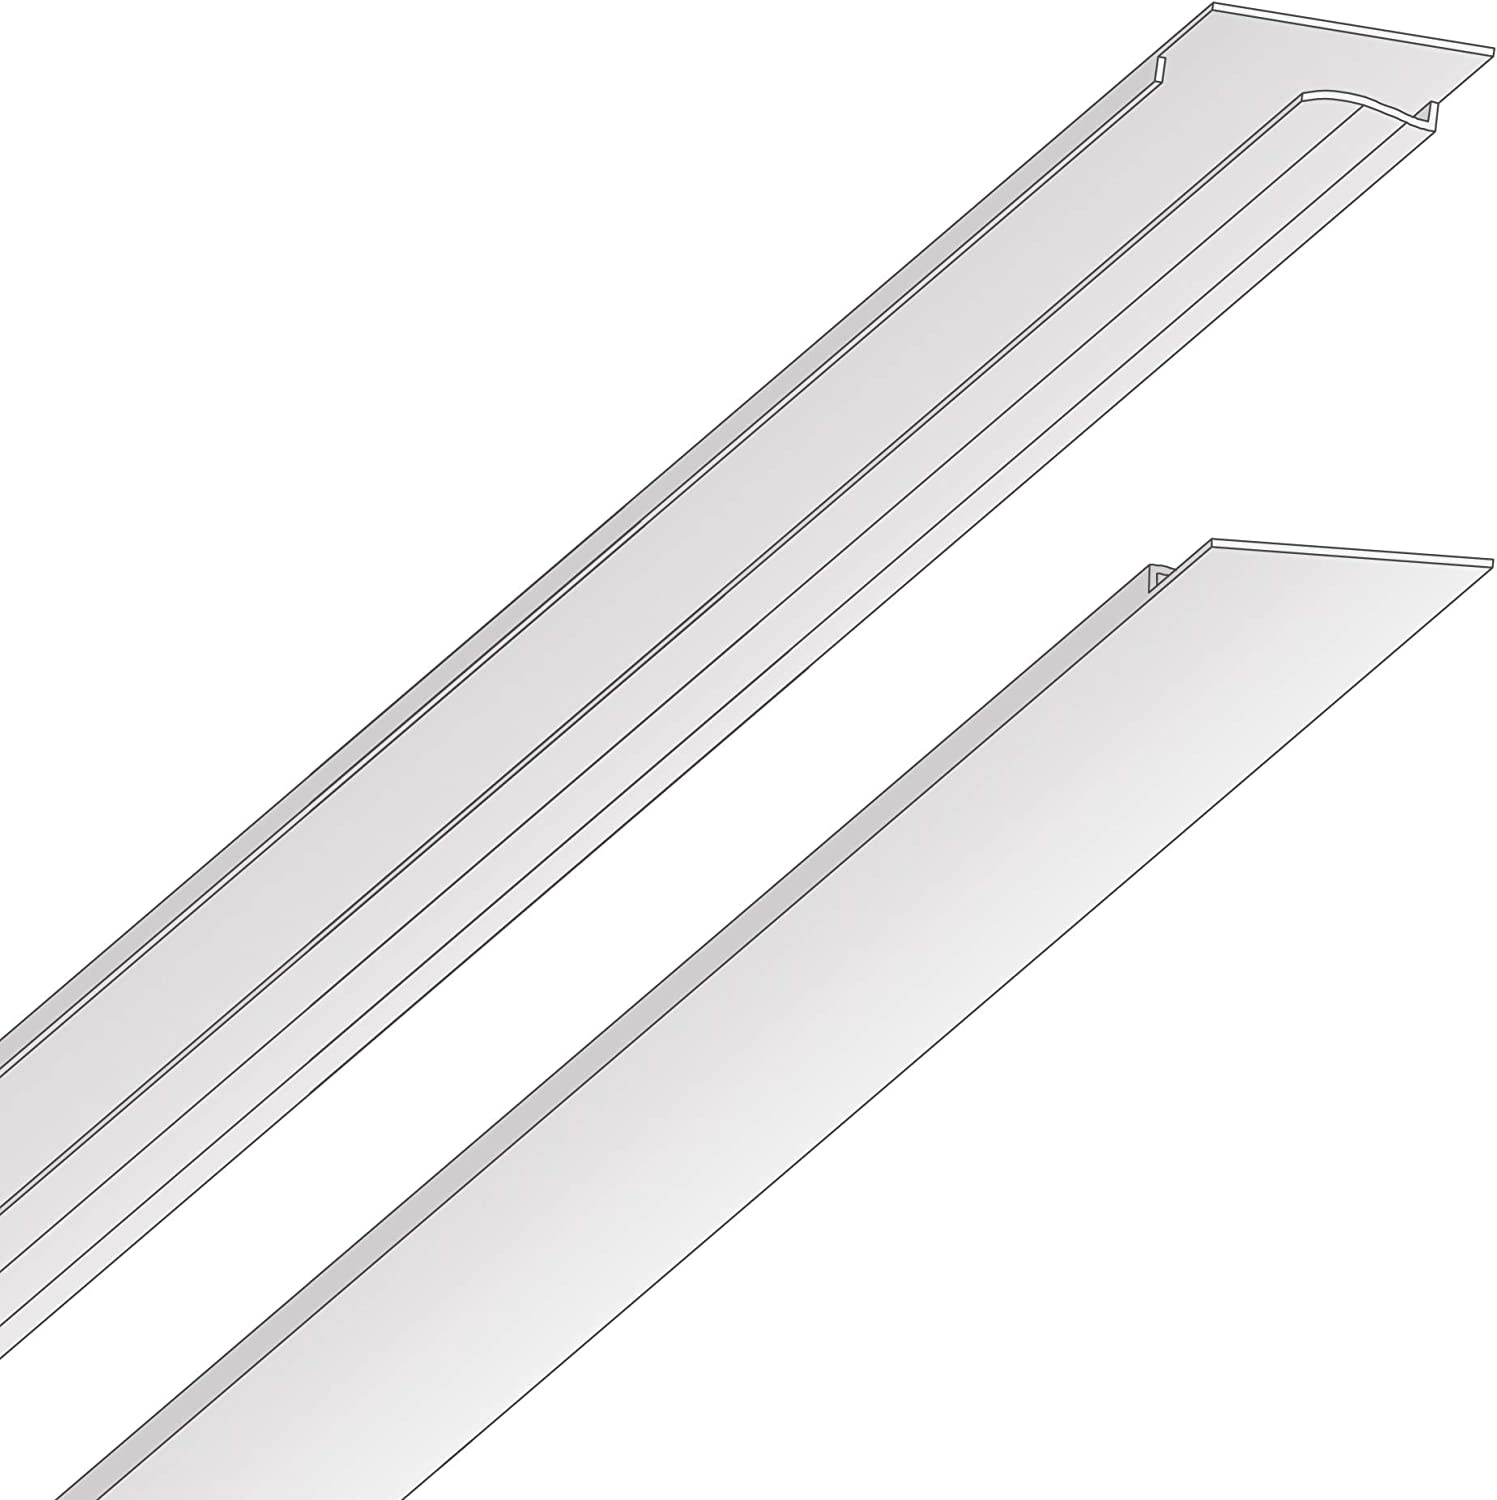 EZ-On T-bar Ceiling Grid Cover Kit - Snap On - White - 58 Piece (96 sq ft)